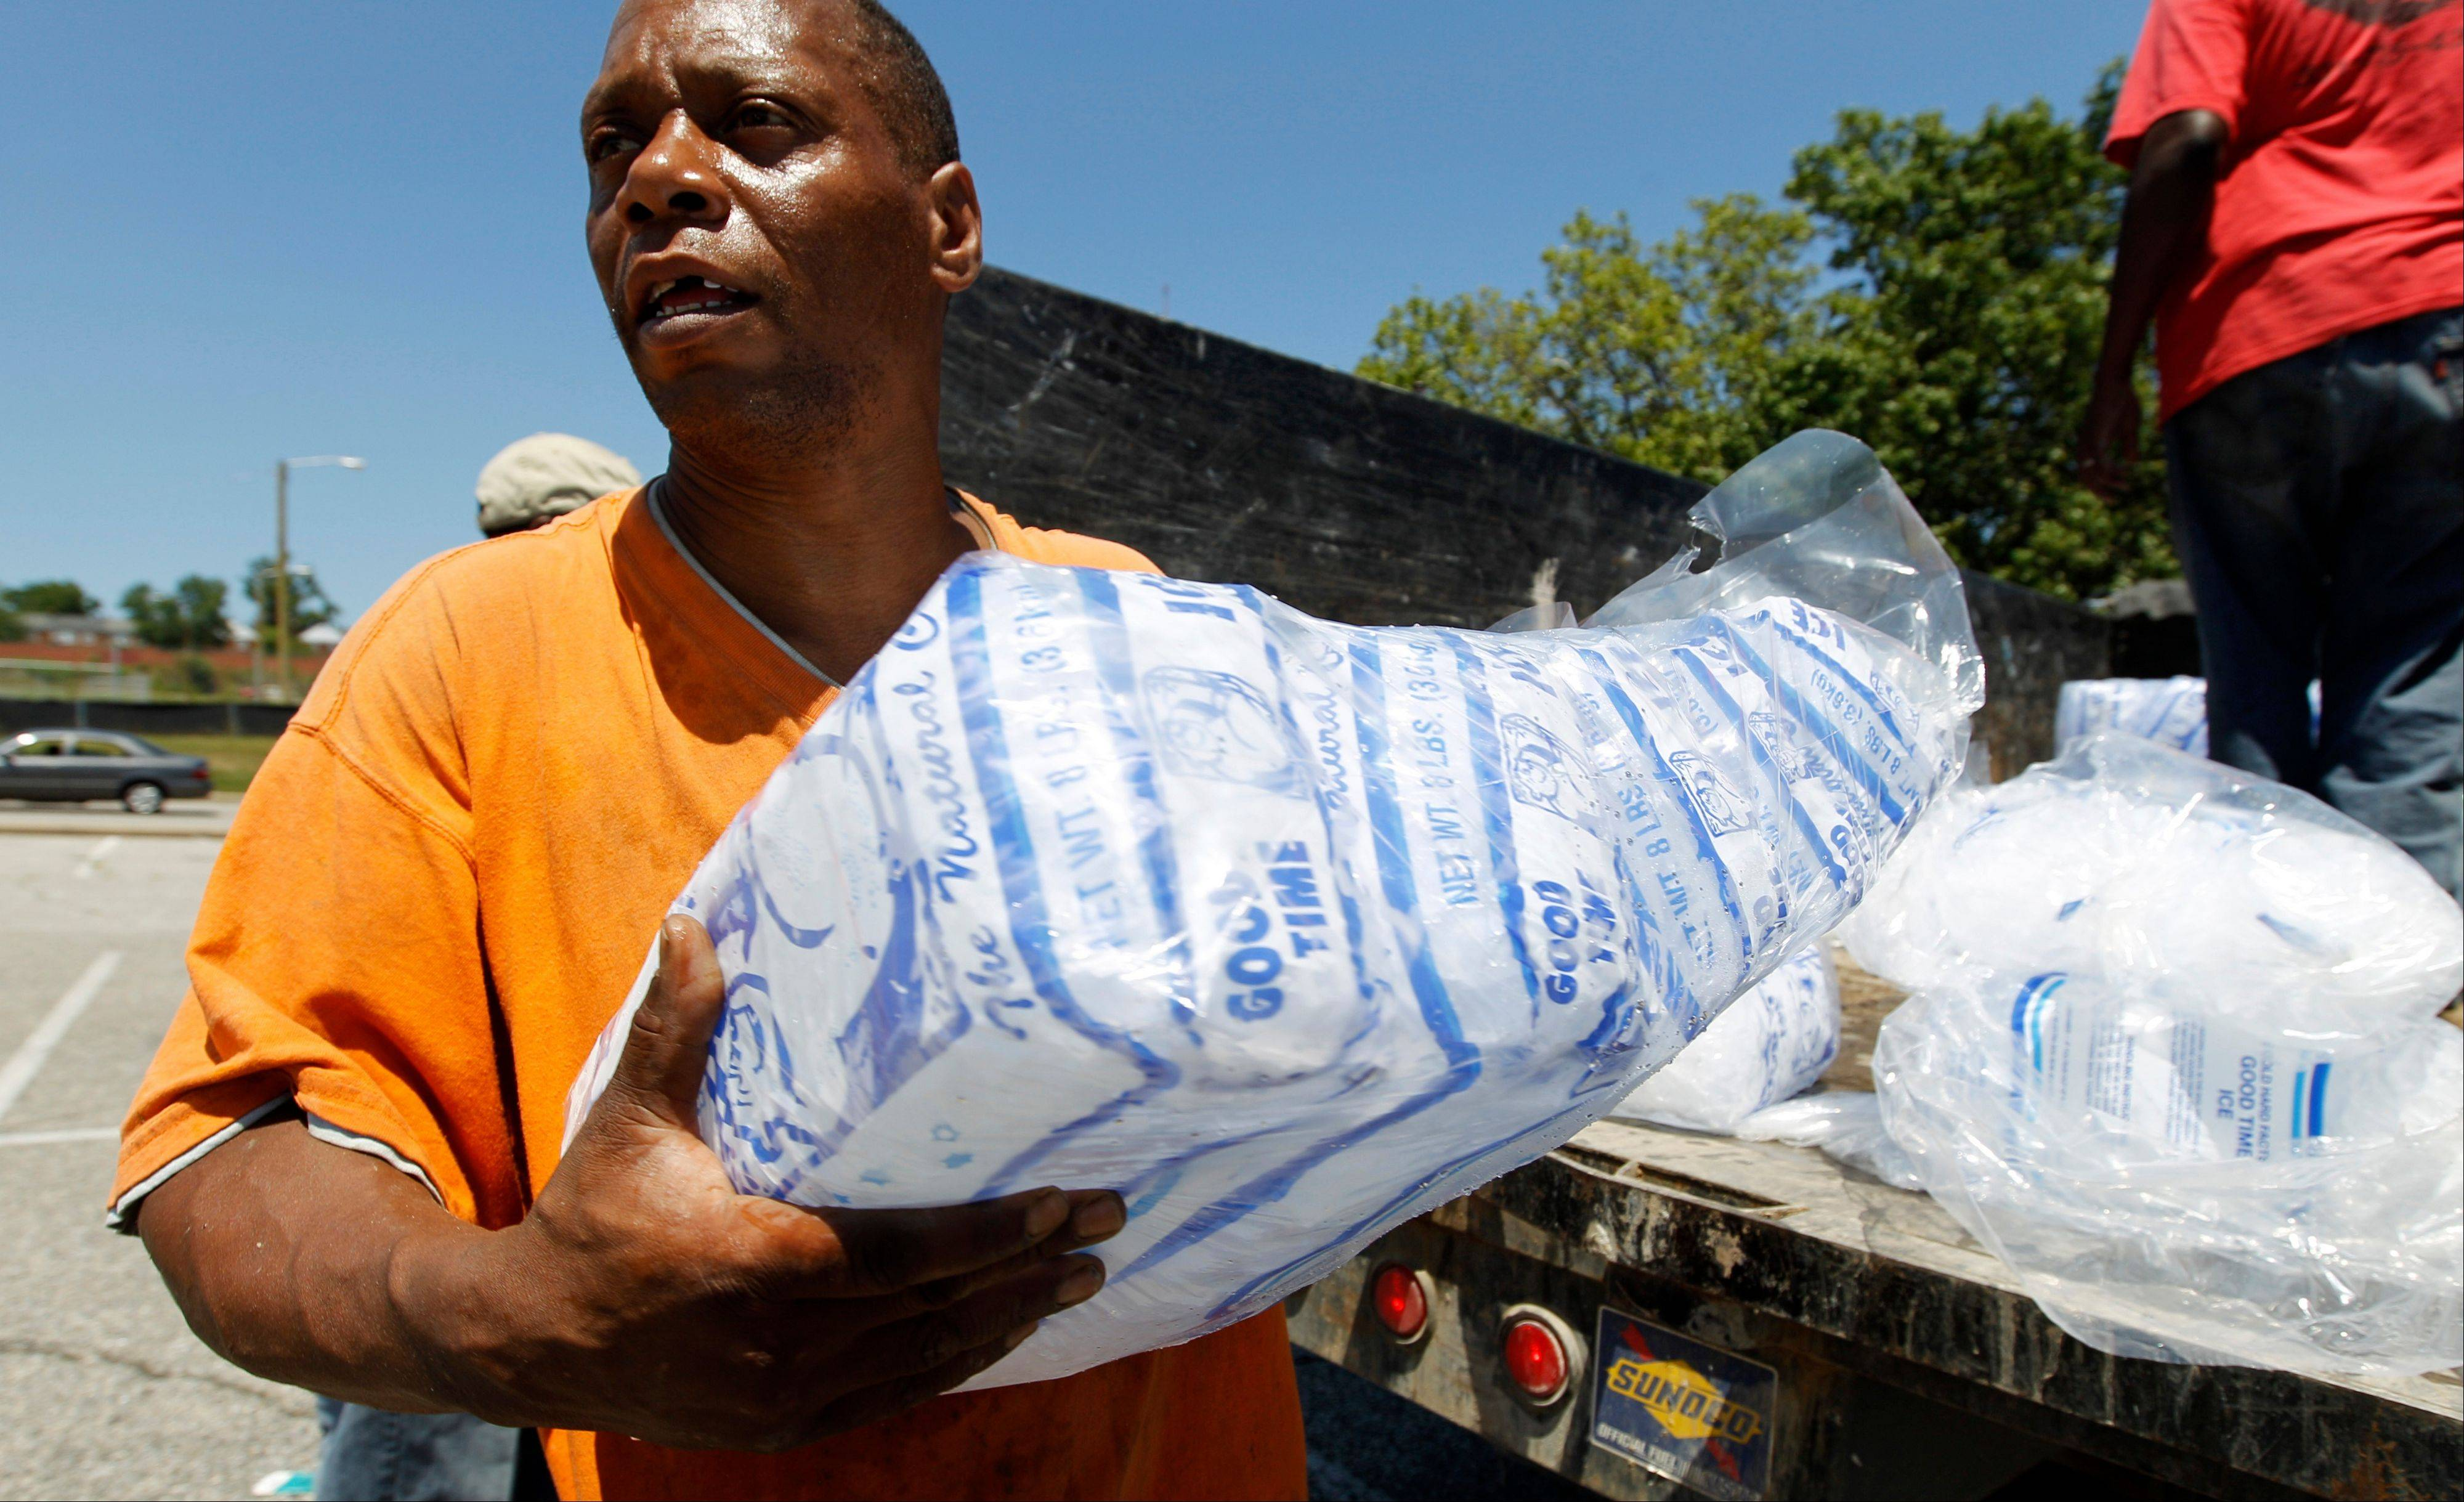 Baltimore city worker Joe Lane gives away free bags of ice to residents at the Northwood Plaza shopping center in Baltimore on Monday, July 2, 2012. Around 2 million customers from North Carolina to New Jersey and as far west as Illinois were without power Monday morning after a round of summer storms.